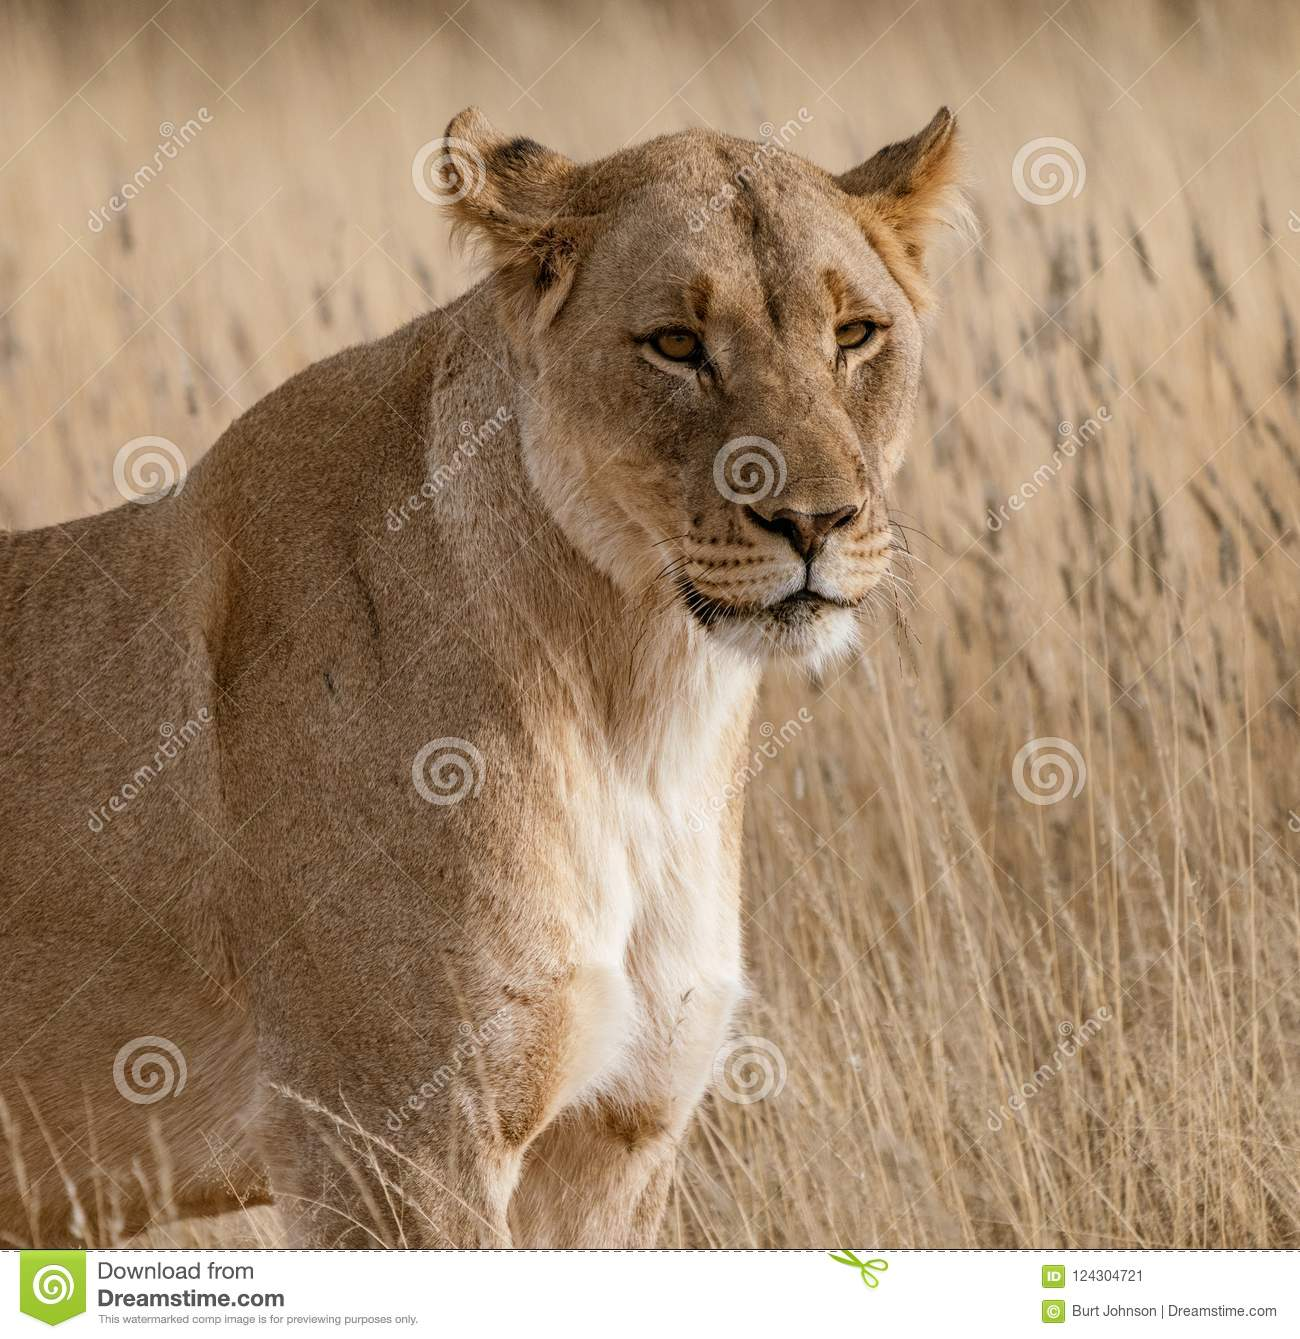 Female Lion Walks Across Dirt Toad Stock Image - Image of